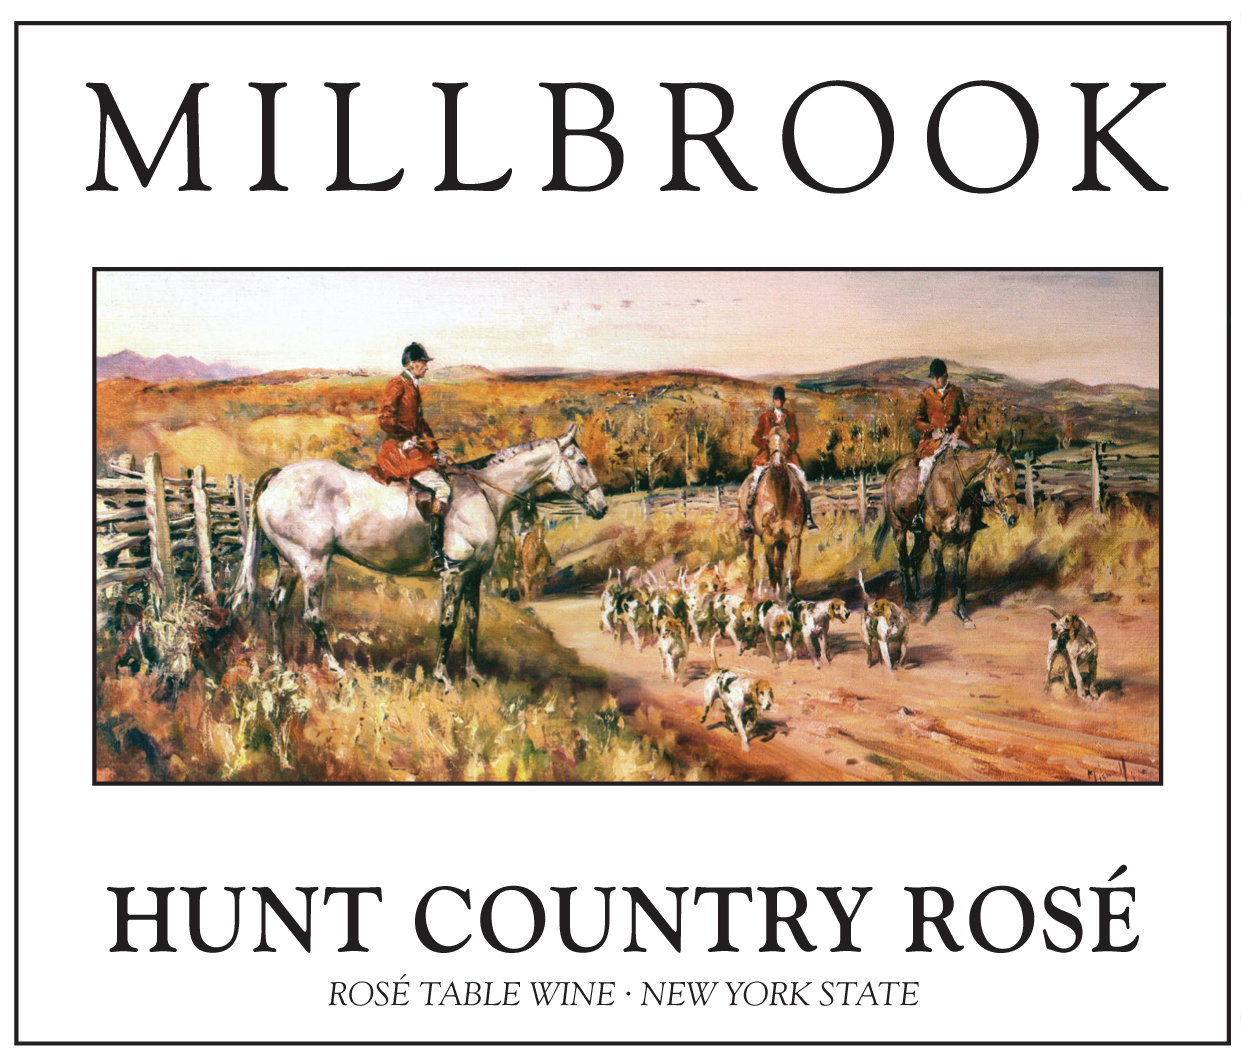 hunt country rose